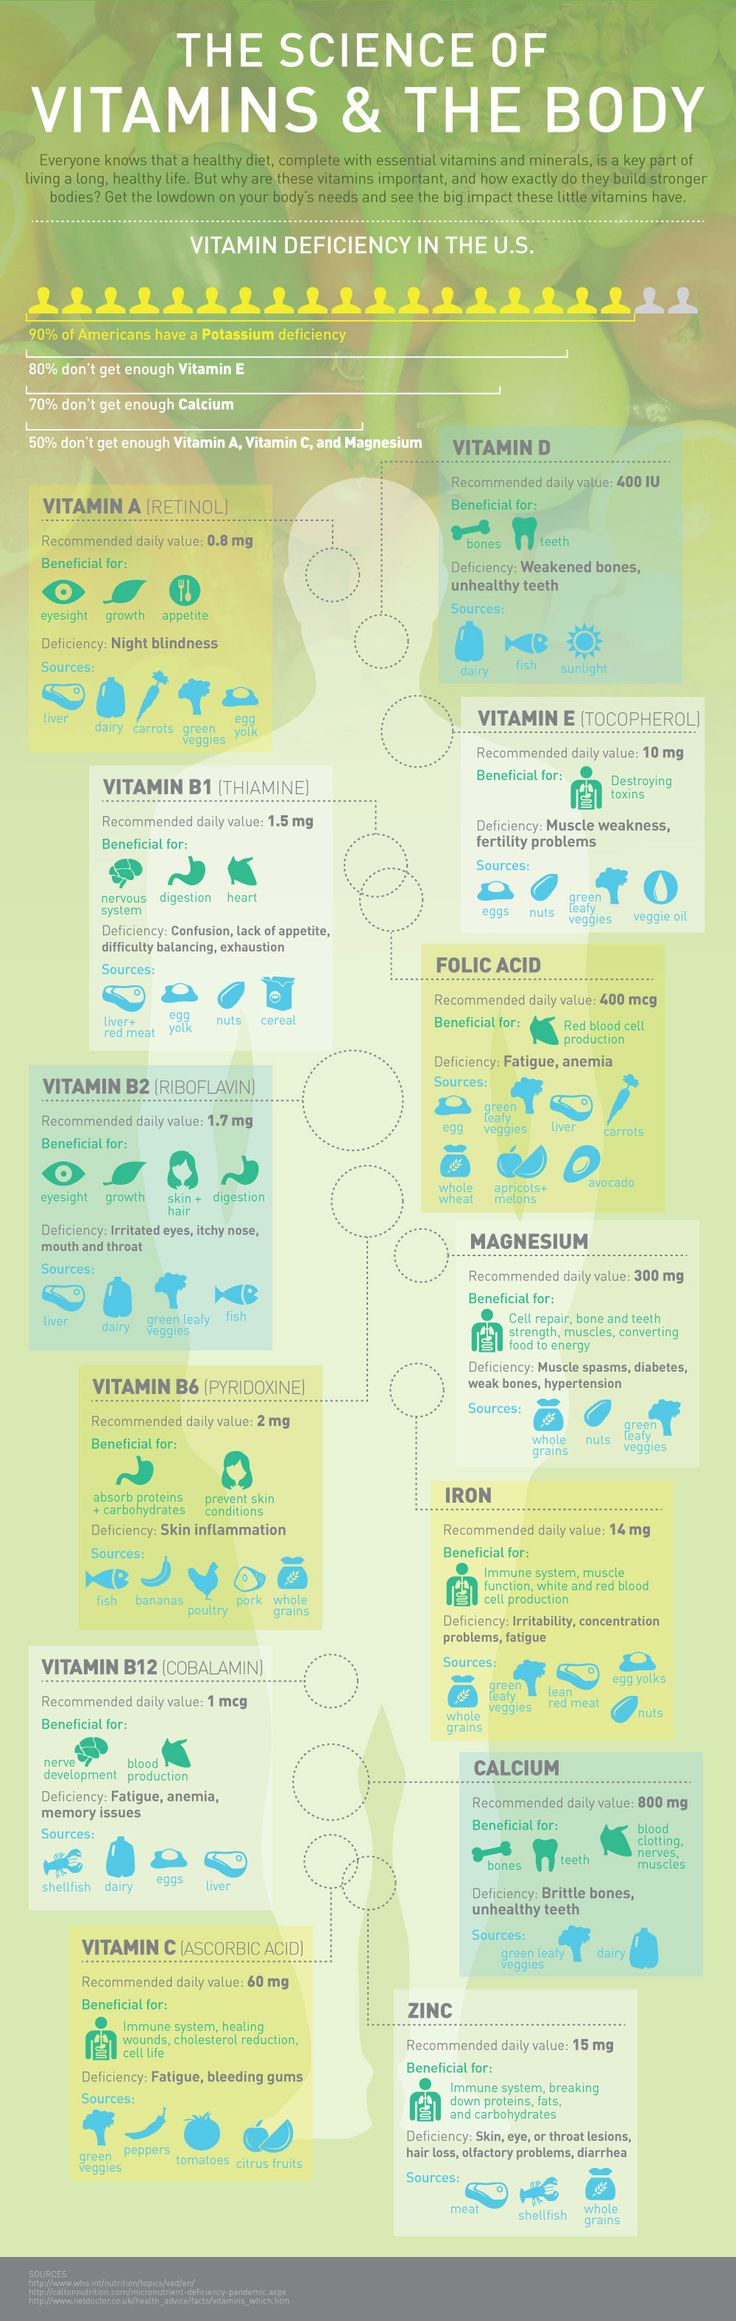 Vitamin Deficiency Infographic #nutrition